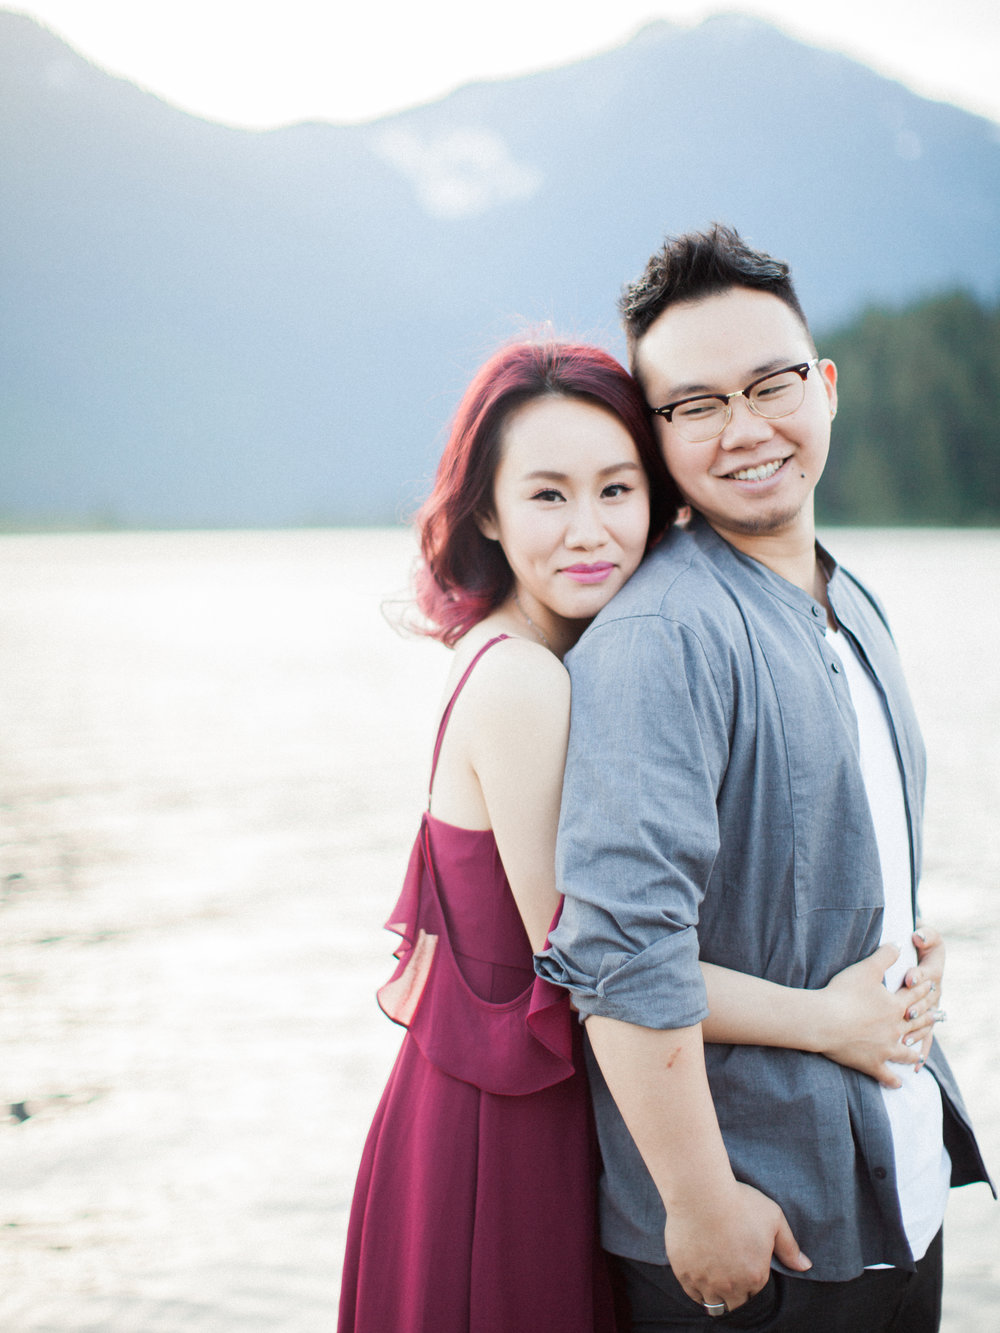 20170528Maple_Ridge_Engagement_Mary_Marco_Prewedding-22 copy.jpg